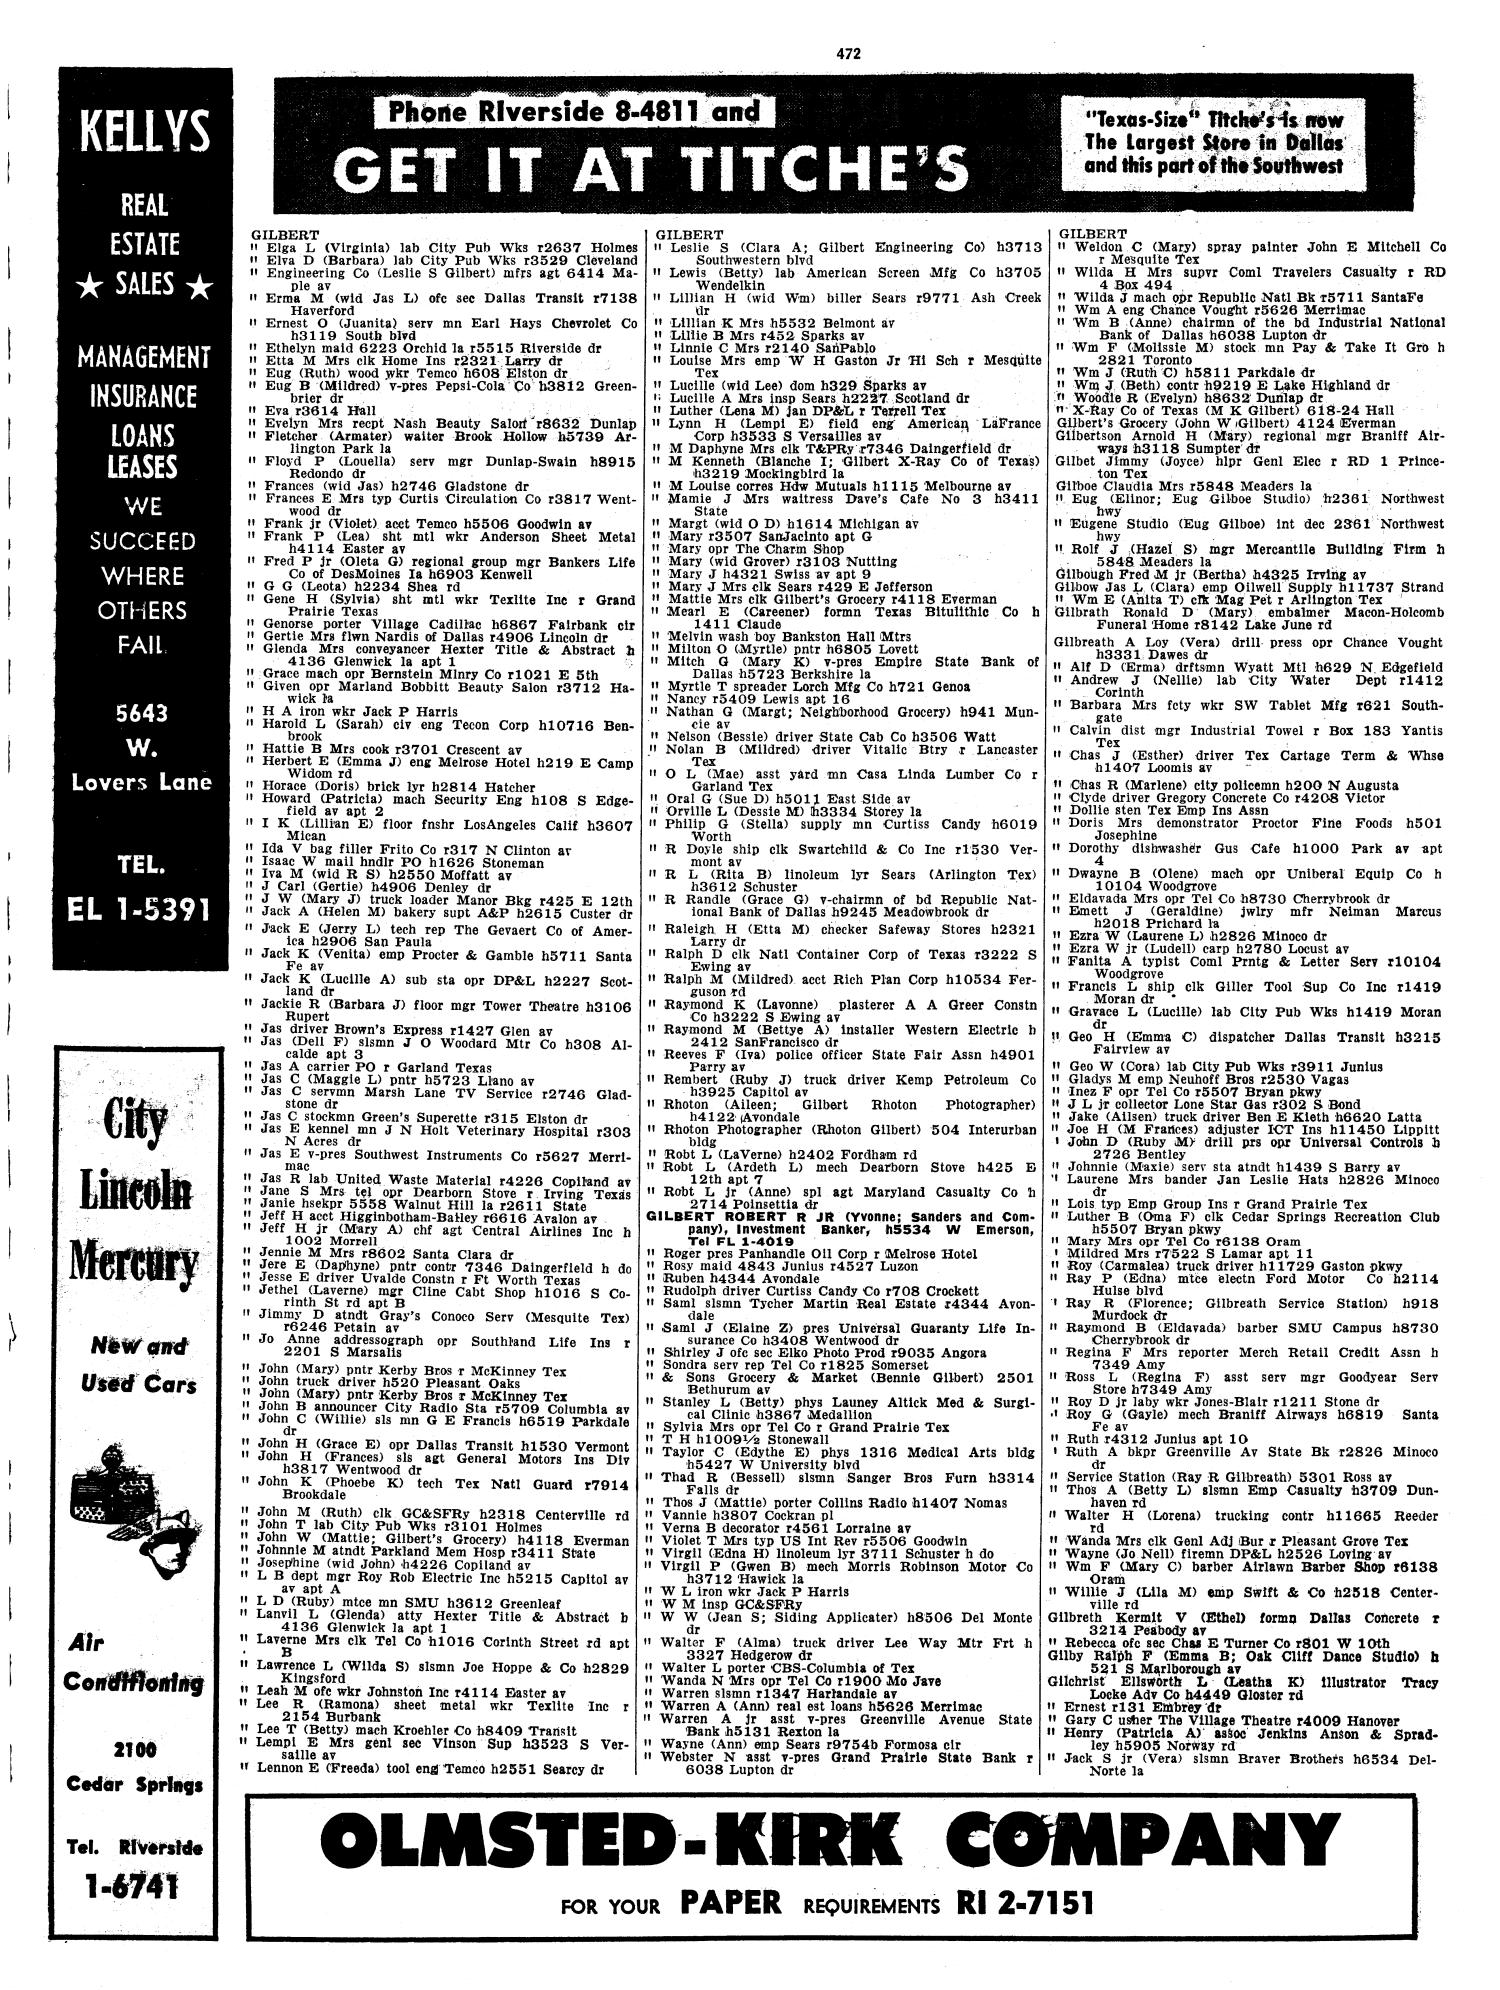 Dallas City Directory, 1957 - Page 472 - The Portal to Texas History